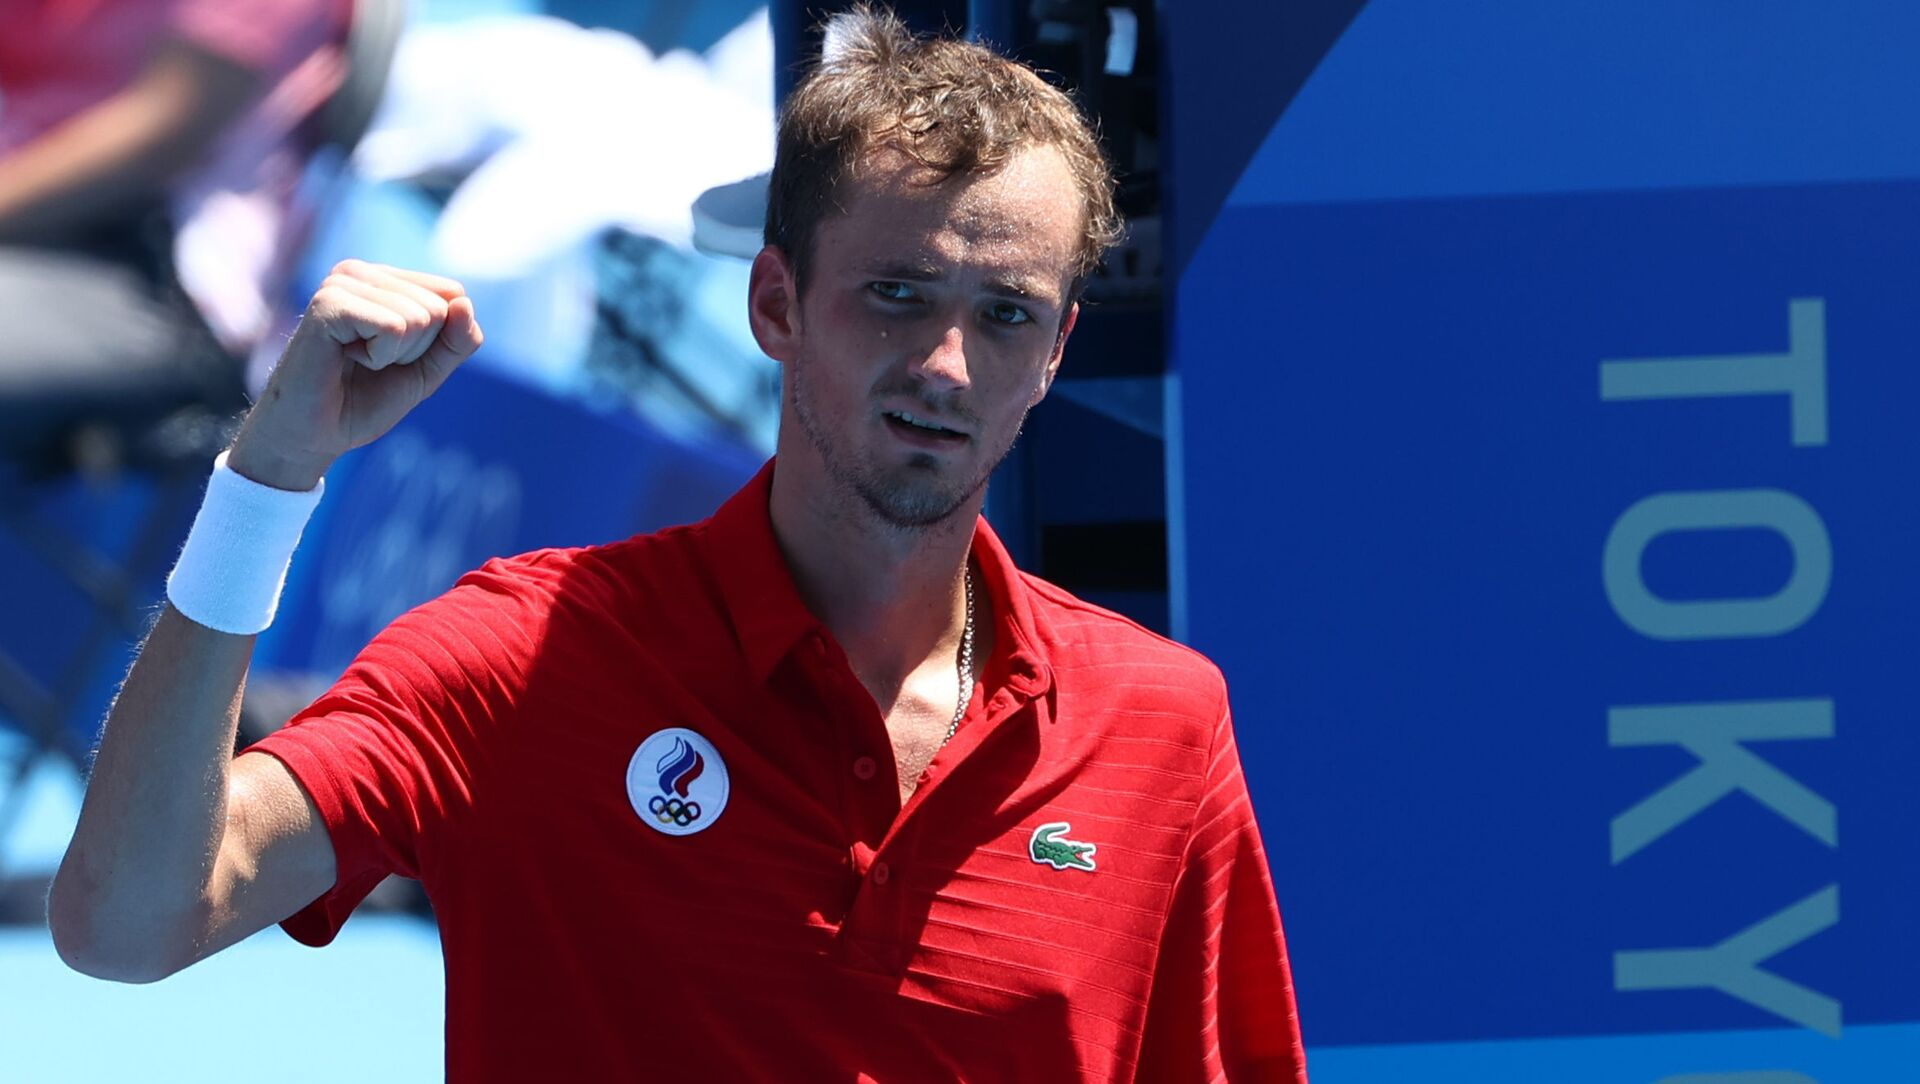 Tokyo 2020 Olympics - Tennis - Men's Singles - Round 3 - Ariake Tennis Park - Tokyo, Japan - July 28, 2021. Daniil Medvedev of the Russian Olympic Committee celebrates after winning his third round match against Fabio Fognini of Italy  - Sputnik International, 1920, 28.07.2021